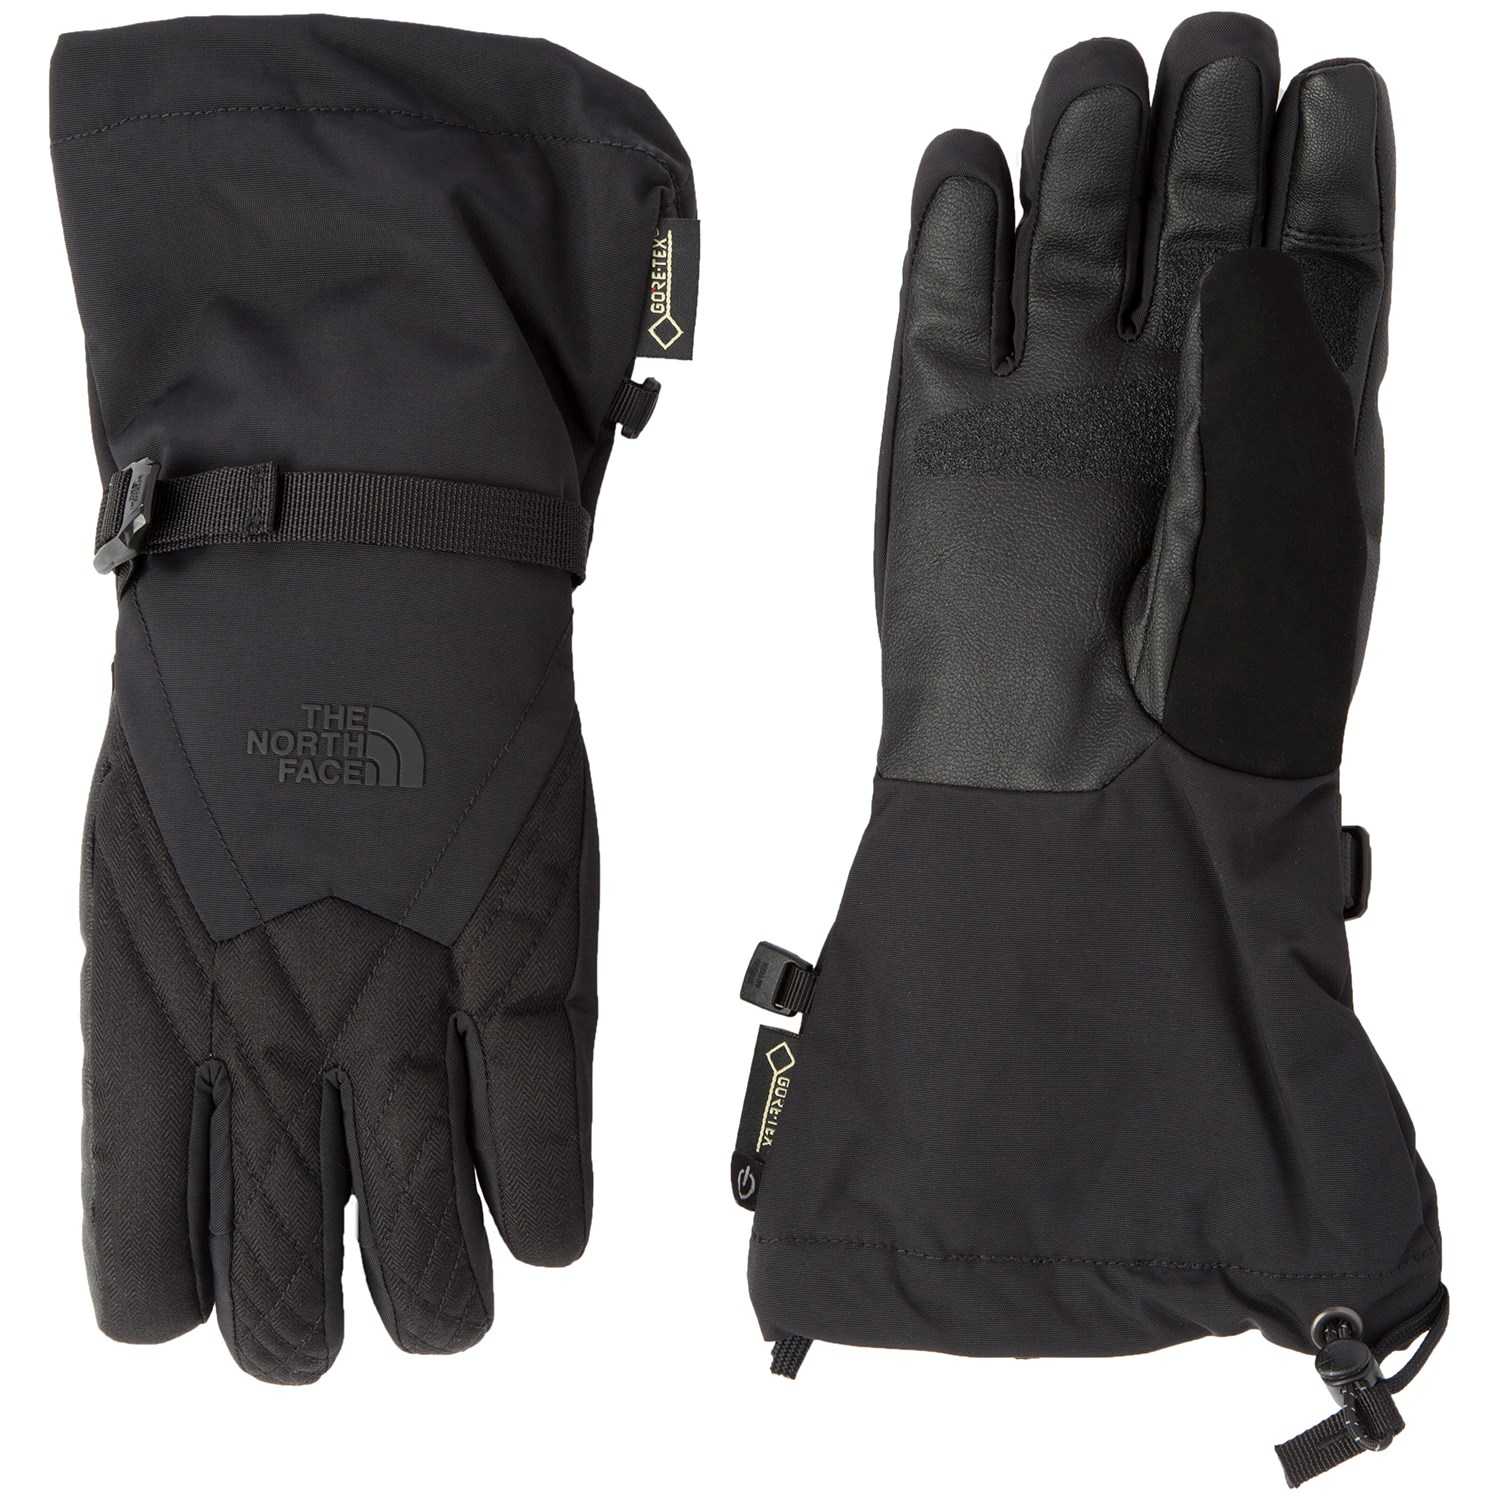 949a32cca The North Face Montana GORE-TEX Gloves - Women's